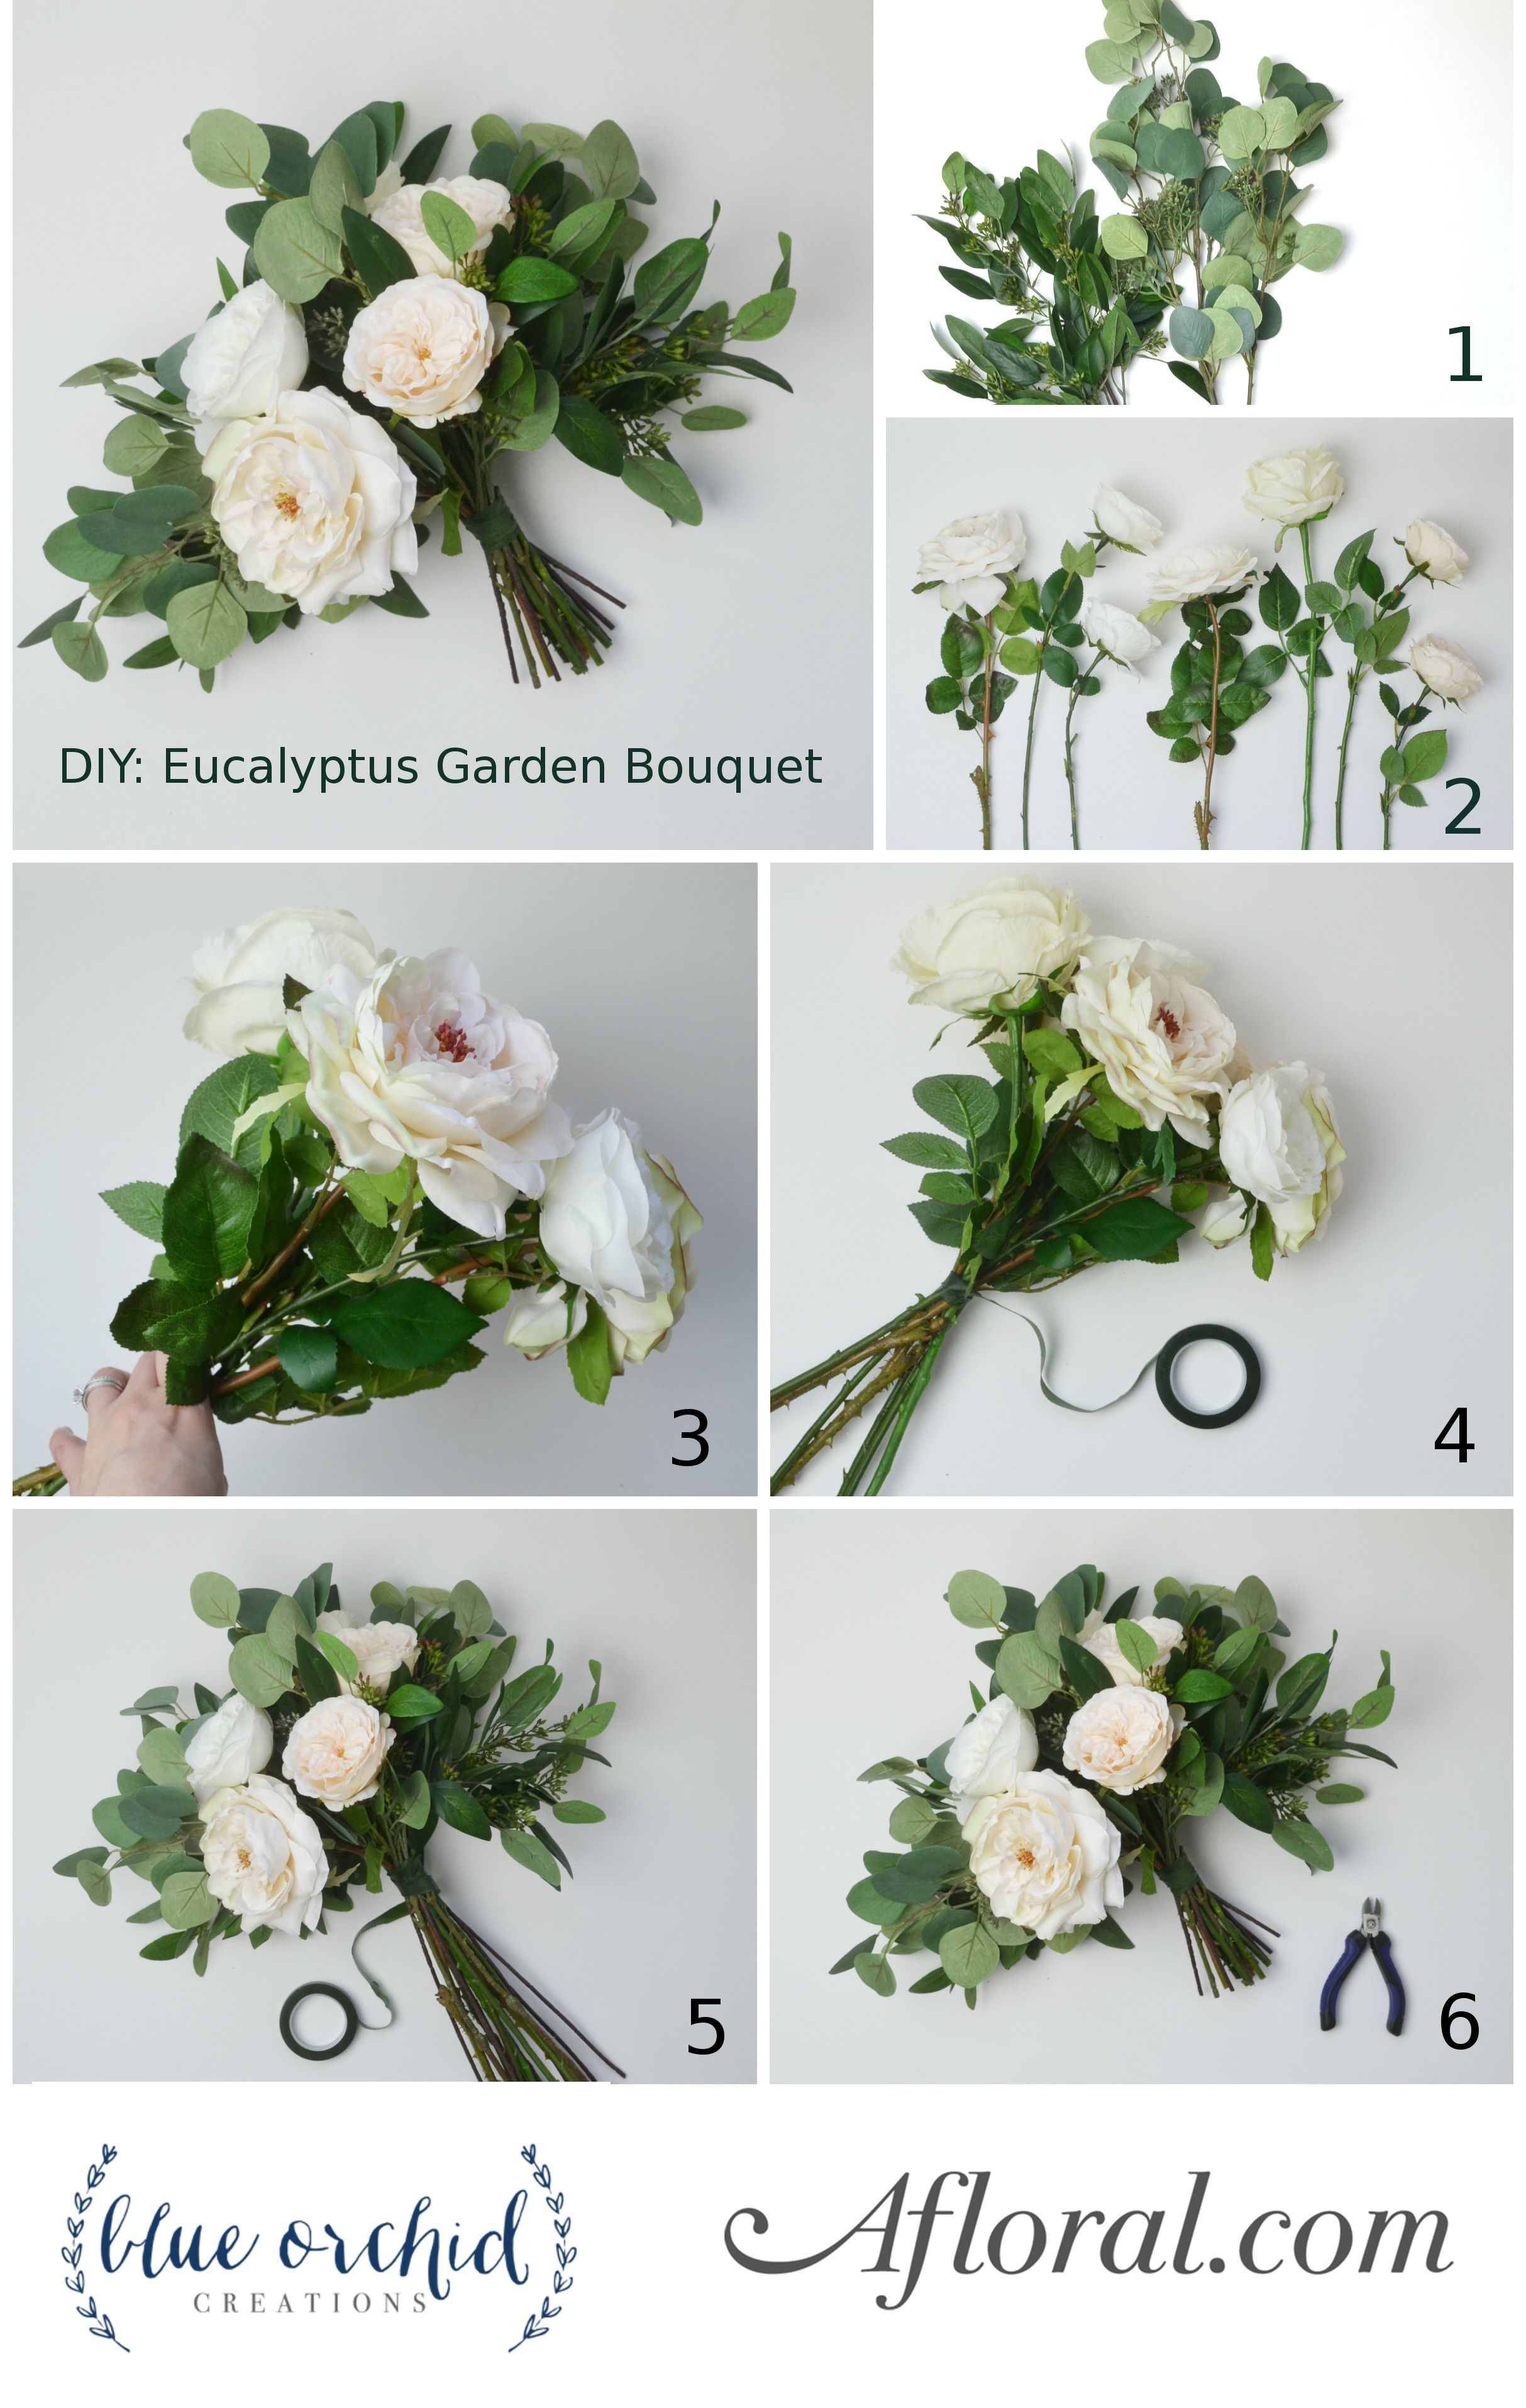 Get ready to make a bridal bouquet for your wedding follow this get ready to make a bridal bouquet for your wedding follow this bouquet diy from izmirmasajfo